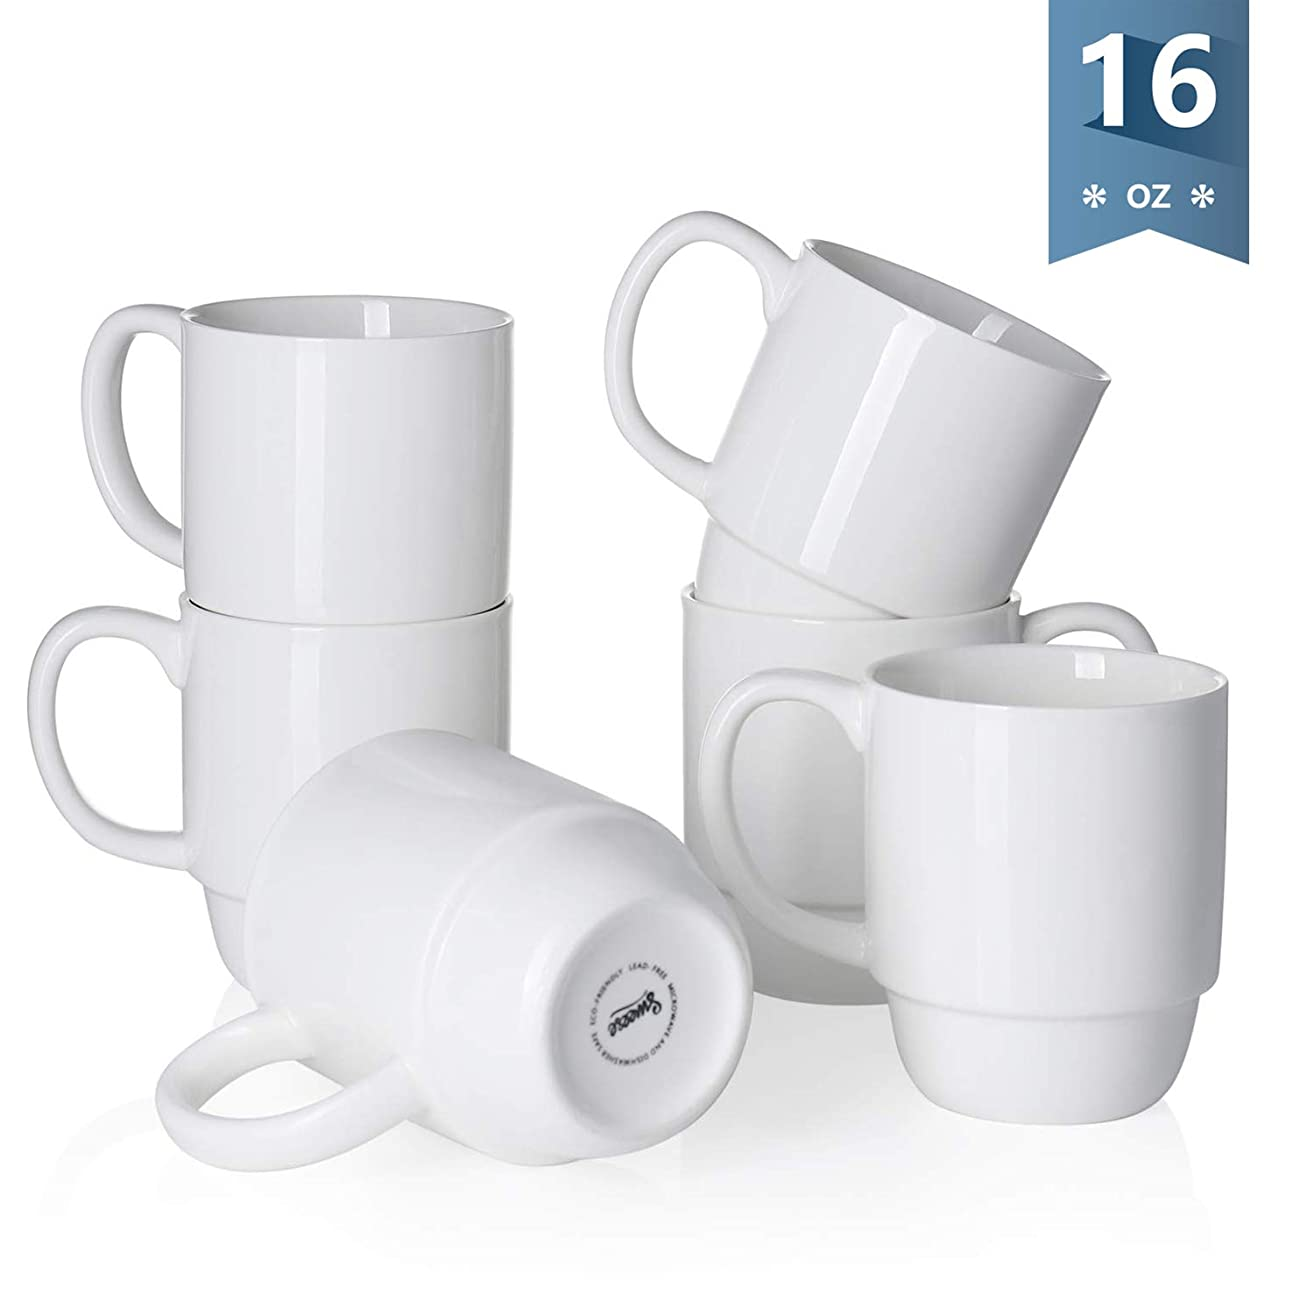 Sweese 6218 Porcelain Stackable Mug Set - 16 Ounce for Coffee, Tea, Cocoa and Mulled Drinks - Set of 6, White